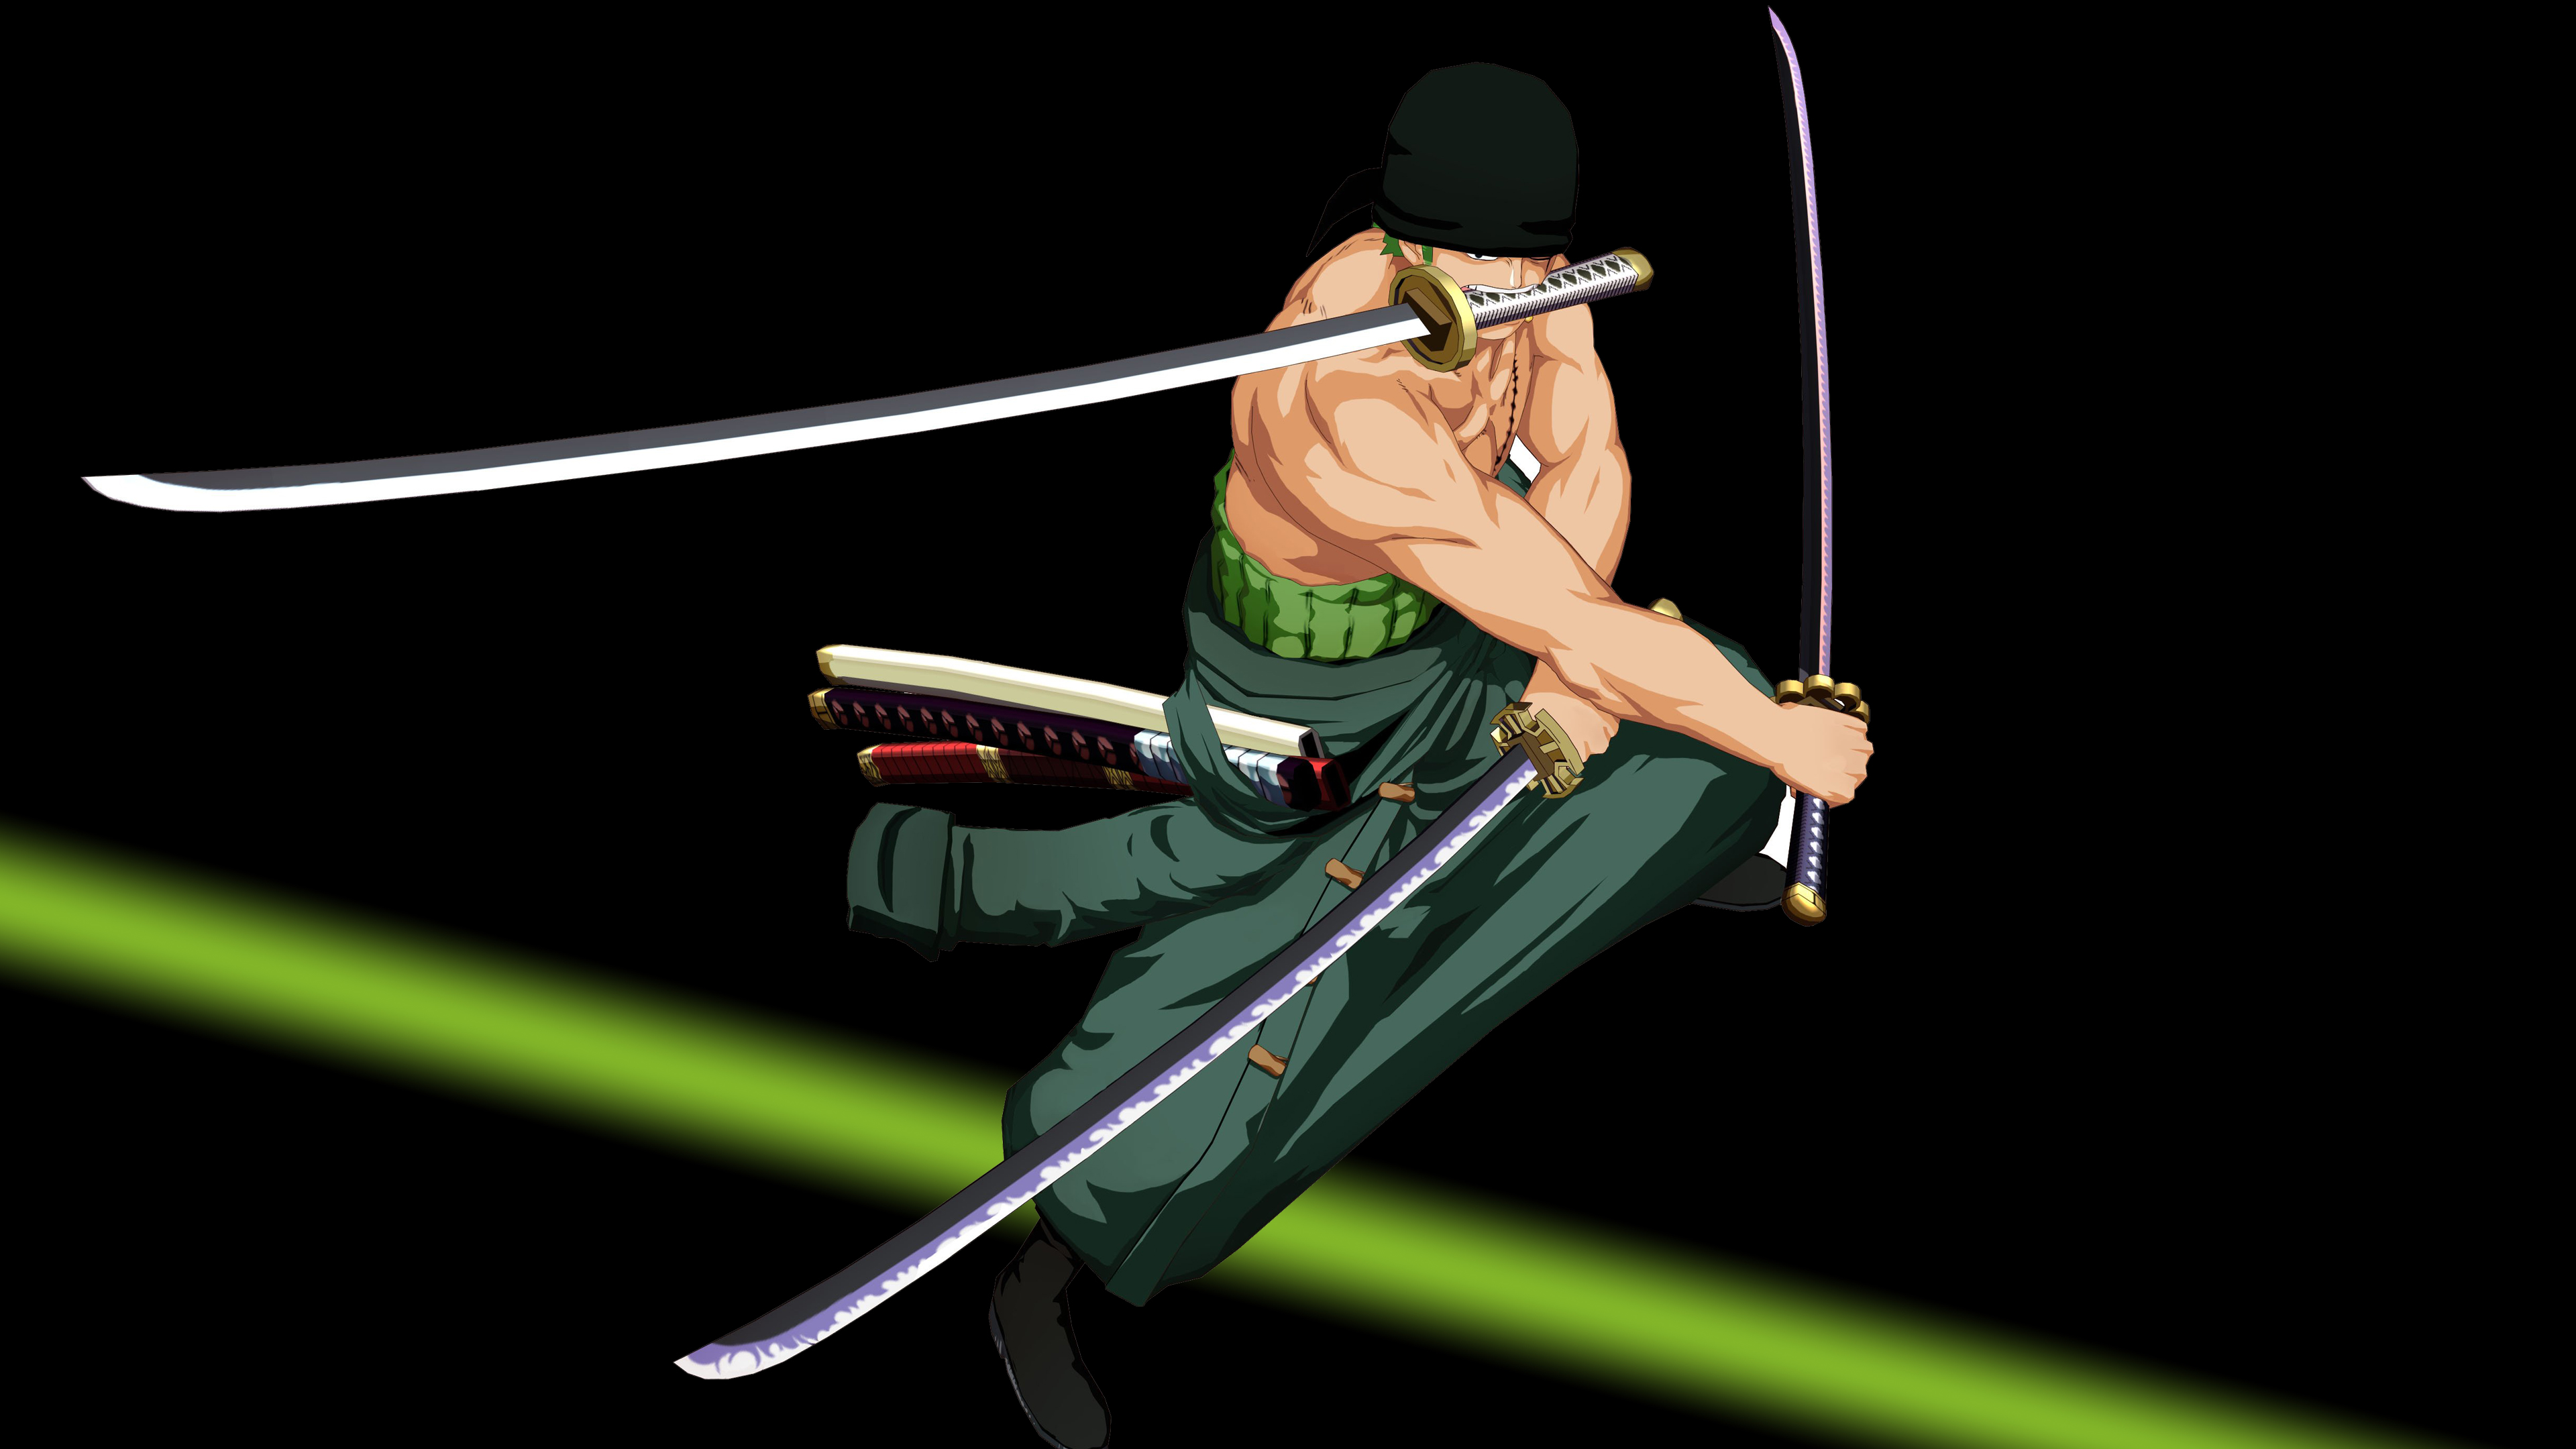 Zoro One Piece 4k Ultra HD Wallpapers 3840x2160